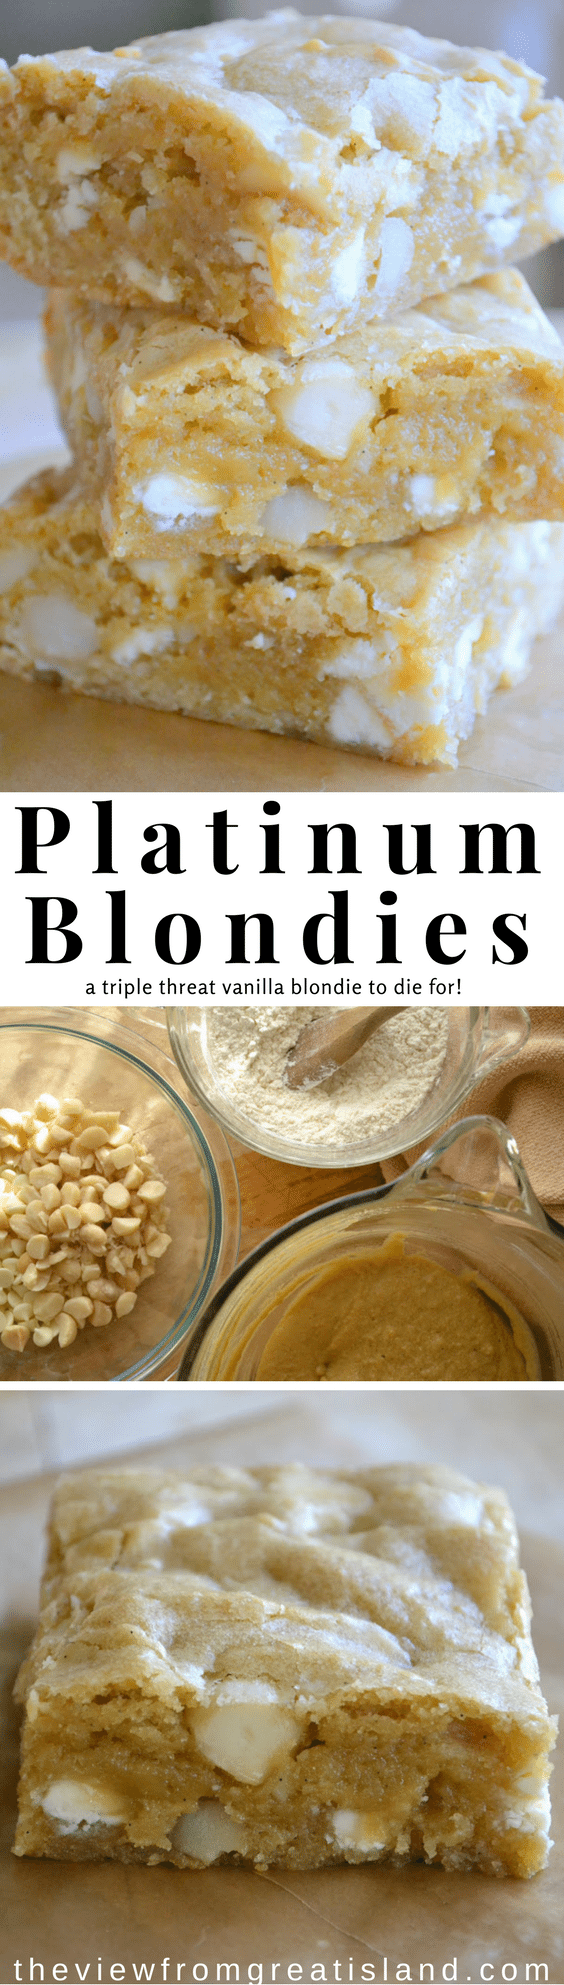 "These White Chocolate Macadamia Nut Blondies are the bombshells of the blondie world. I call them ""Platinum Blondies' and I love them. You will too. #blondies #brownies #whitechocolate #macadamianut #bestblondies #dessert #easydessert"